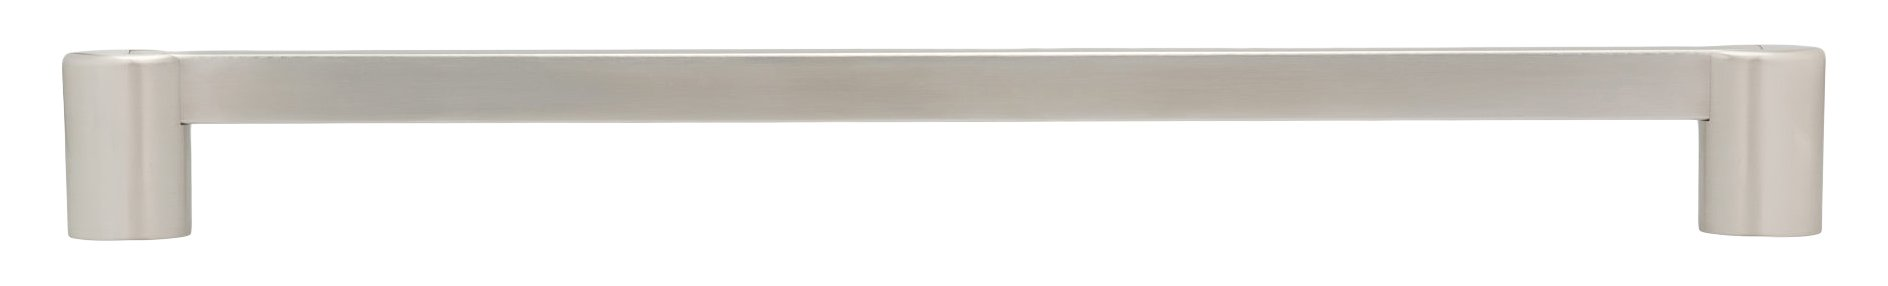 Richelieu-Hardware–bp8728320195–Modernes-Metall-Pull–872812-58-in-320-mm–Brushed-Nickel-Finish